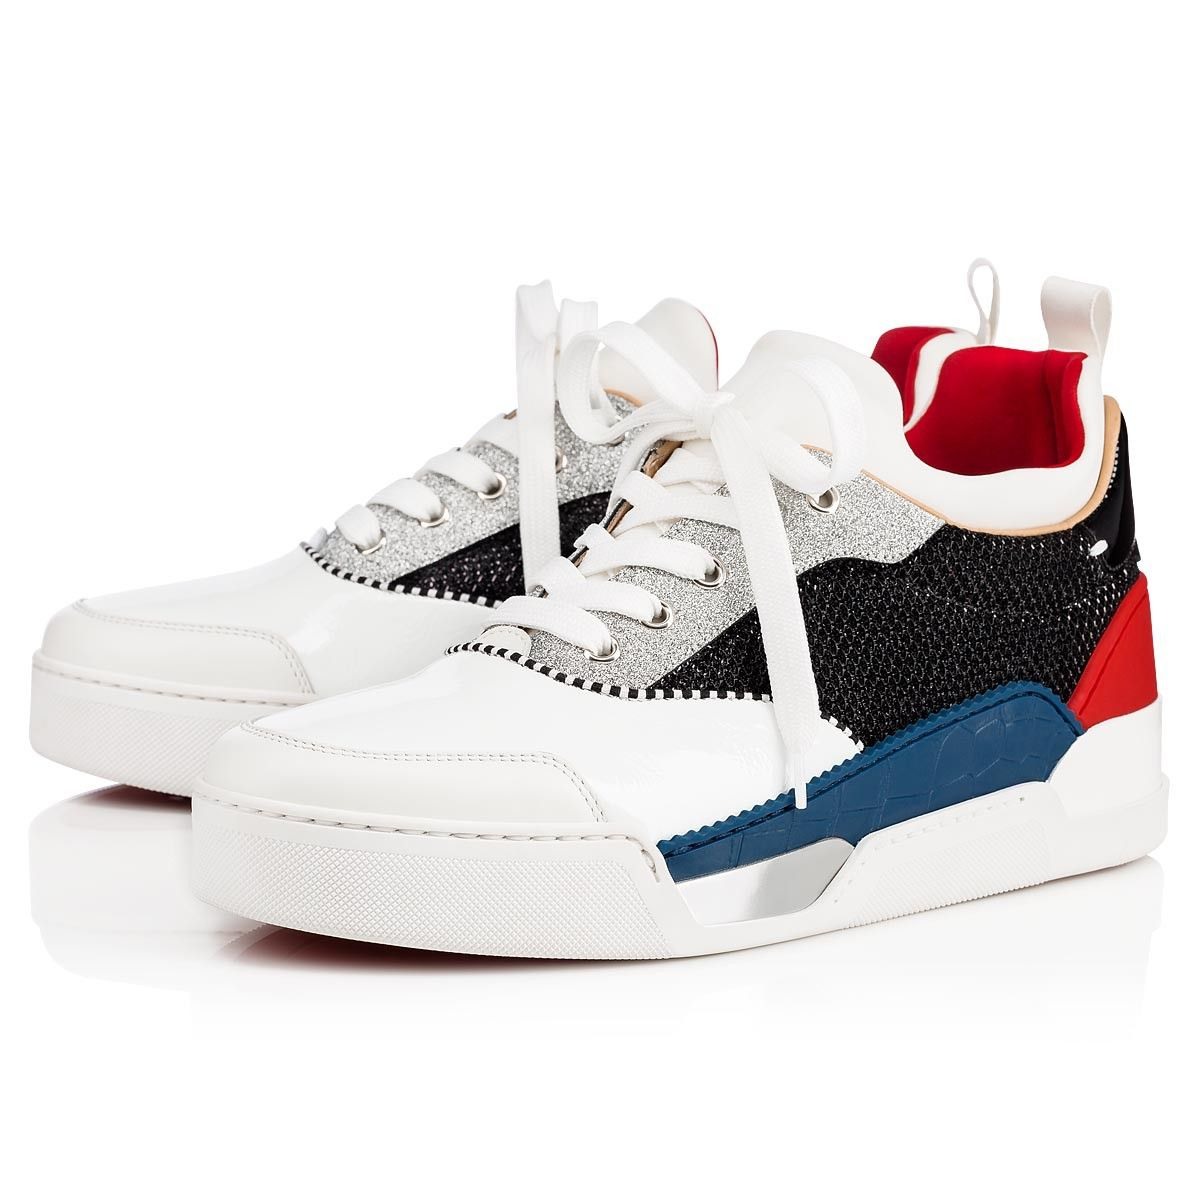 bbf637ab1754 Christian Louboutin United States Official Online Boutique - Aurelien Flat  Version Multi Creative Fabric available online. Discover more Men Shoes by  ...